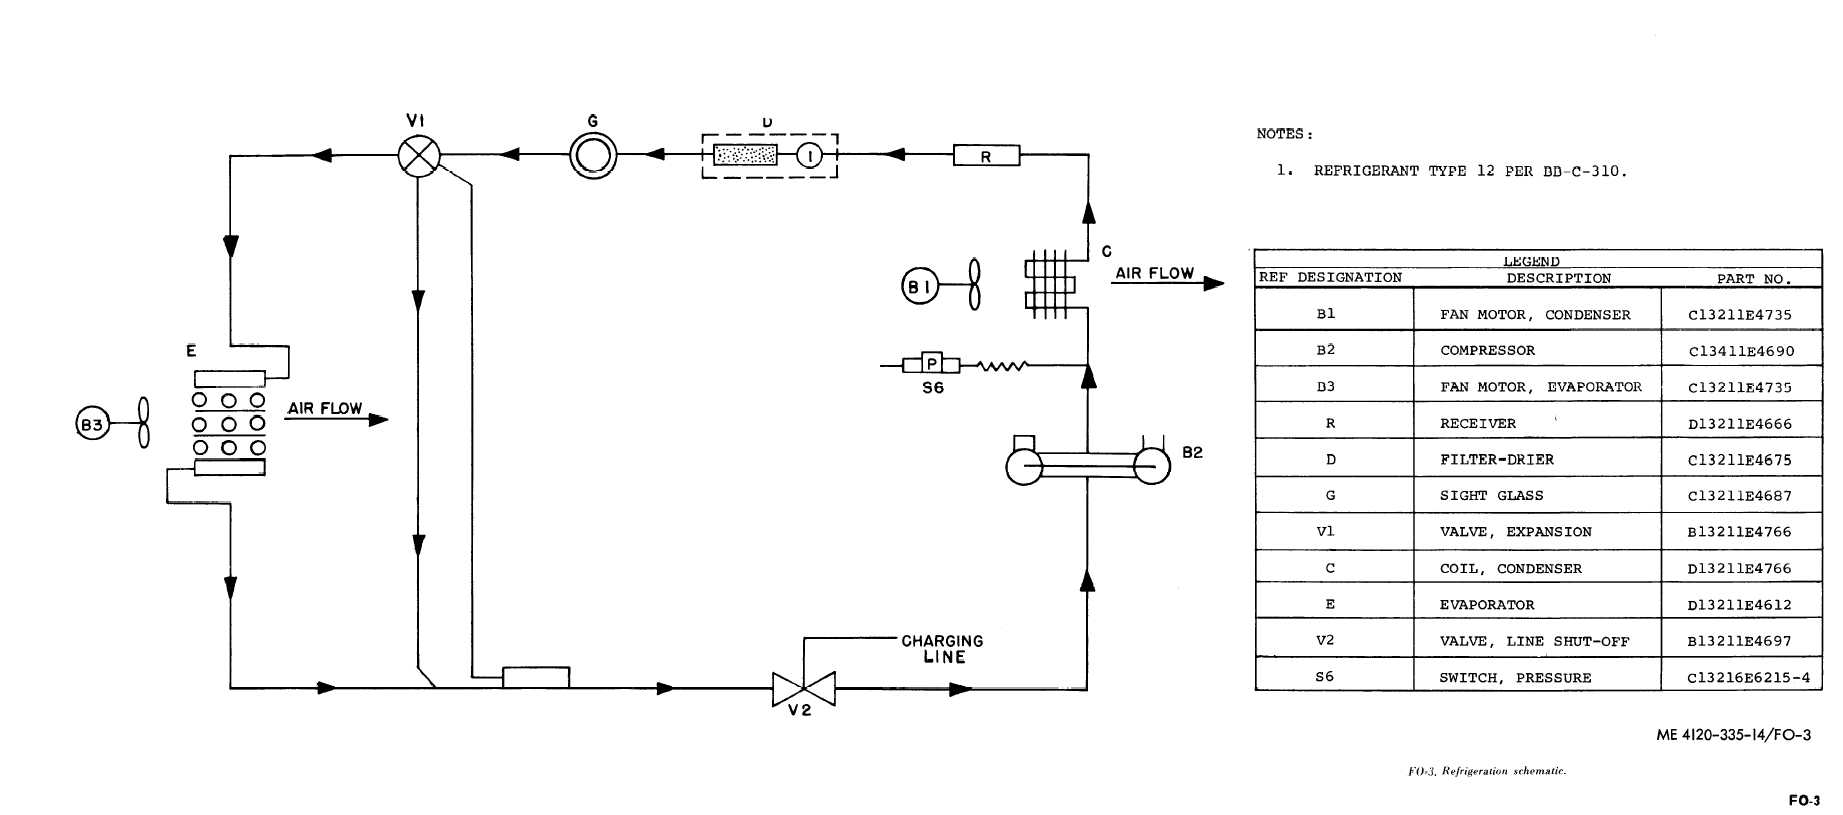 wiring diagram of refrigeration system 1756 if6i walk in cooler schematic get free image about